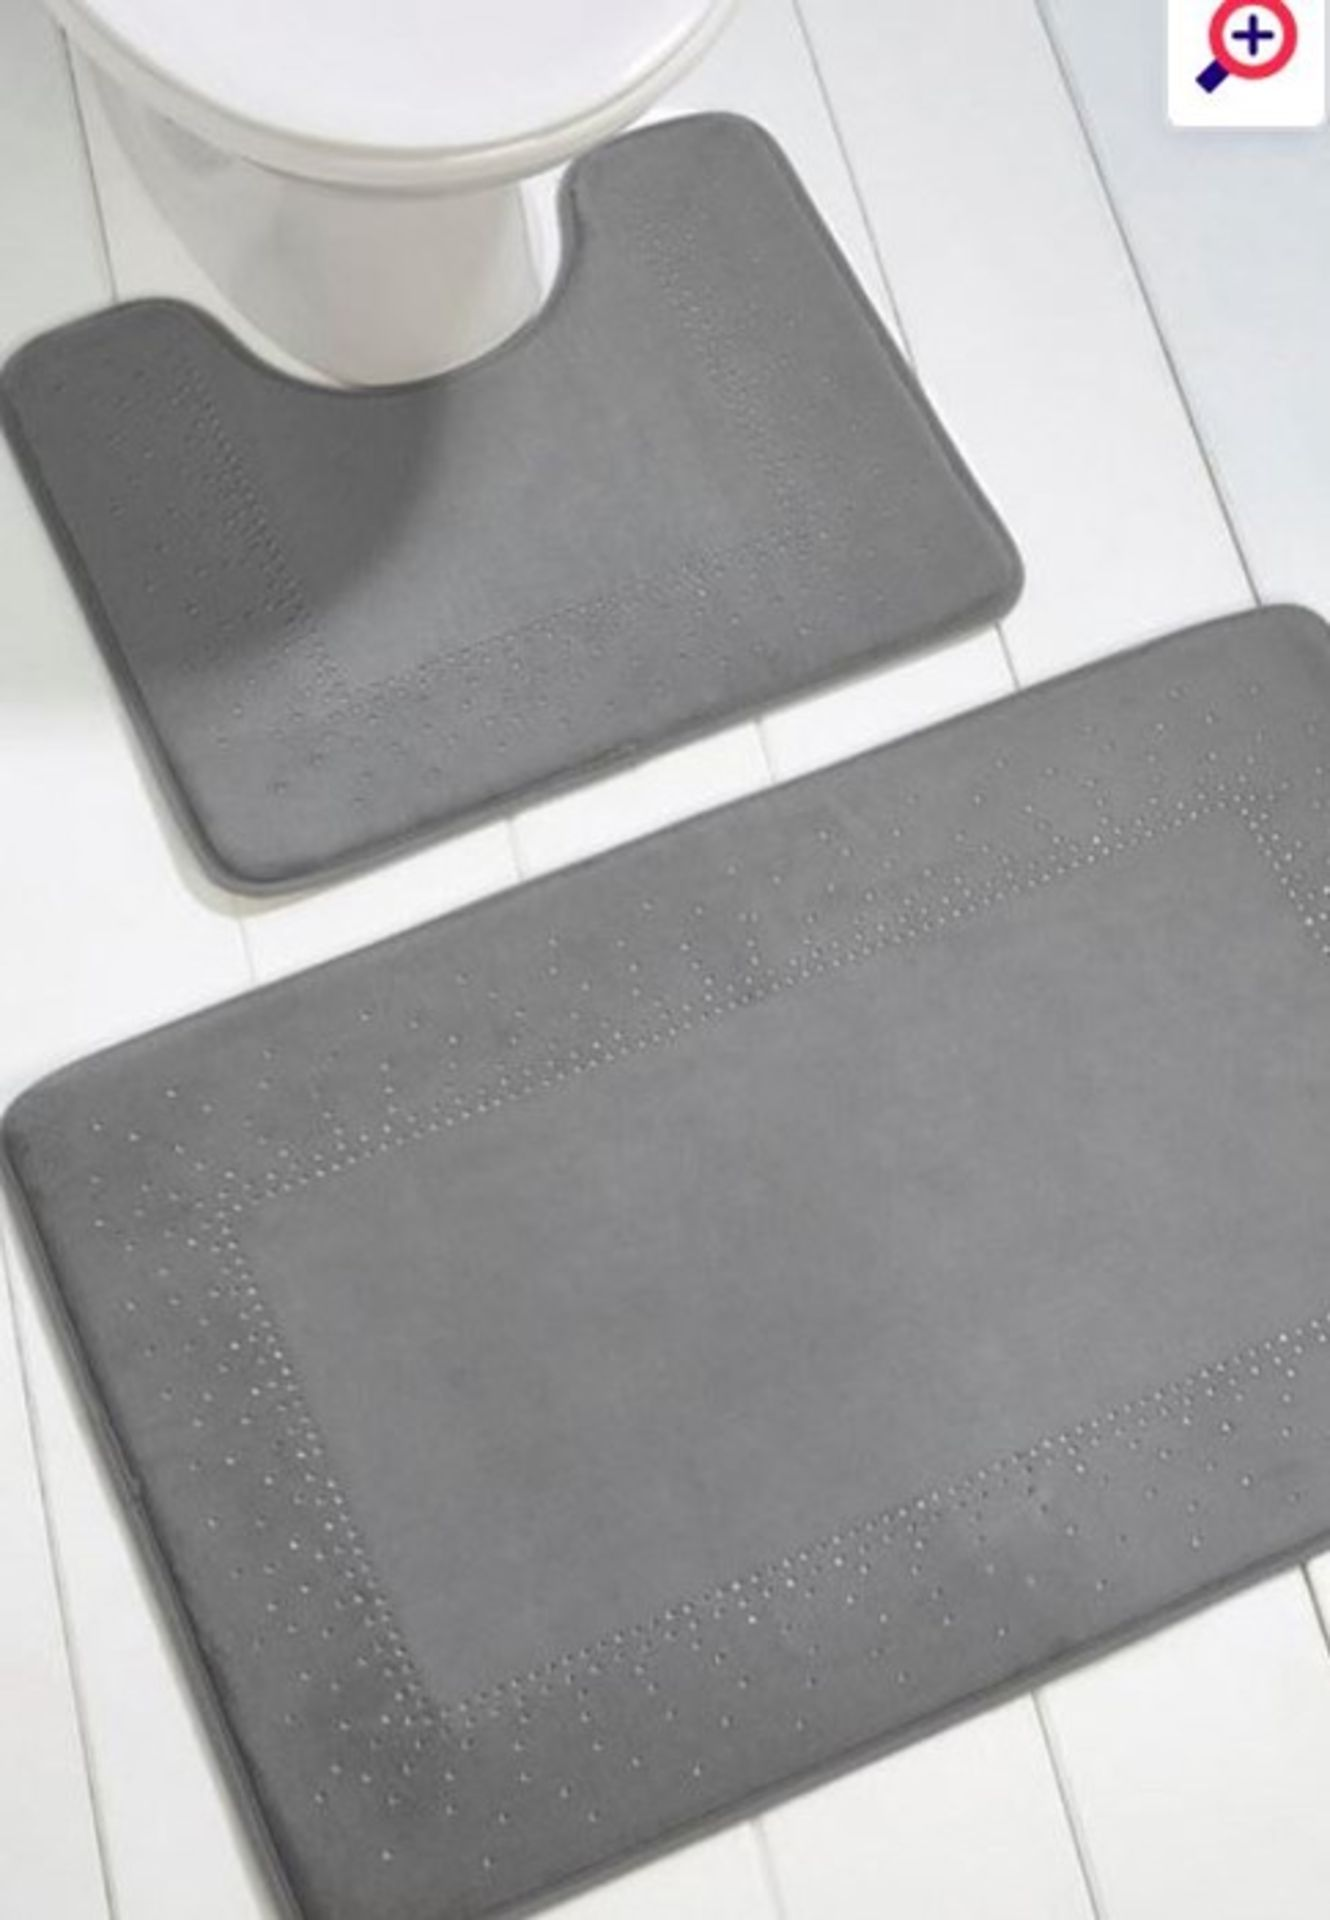 Lot 48 - 1 AS NEW BAGGED SPARKLE 2 PIECE MEMORY FOAM BATH SET IN GREY / RRP £12.99 (PUBLIC VIEWING